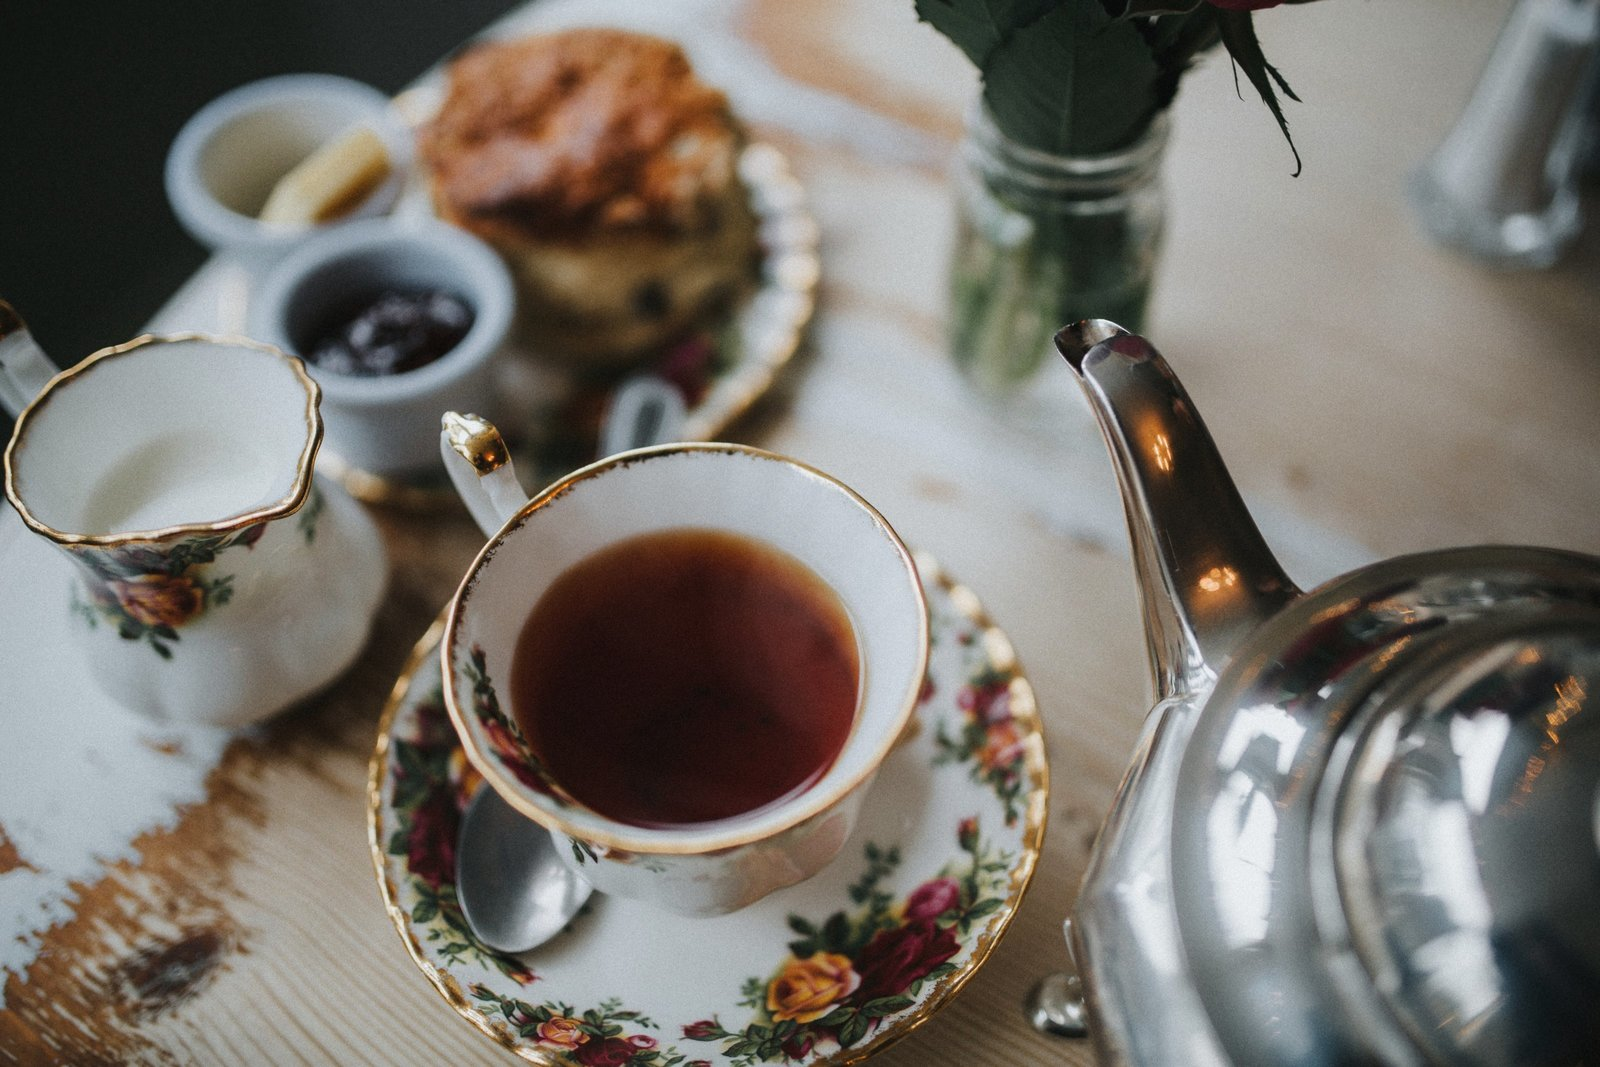 Photograph of afternoon tea at Baldry's Tearoom in Grasmere Village, The Lake District